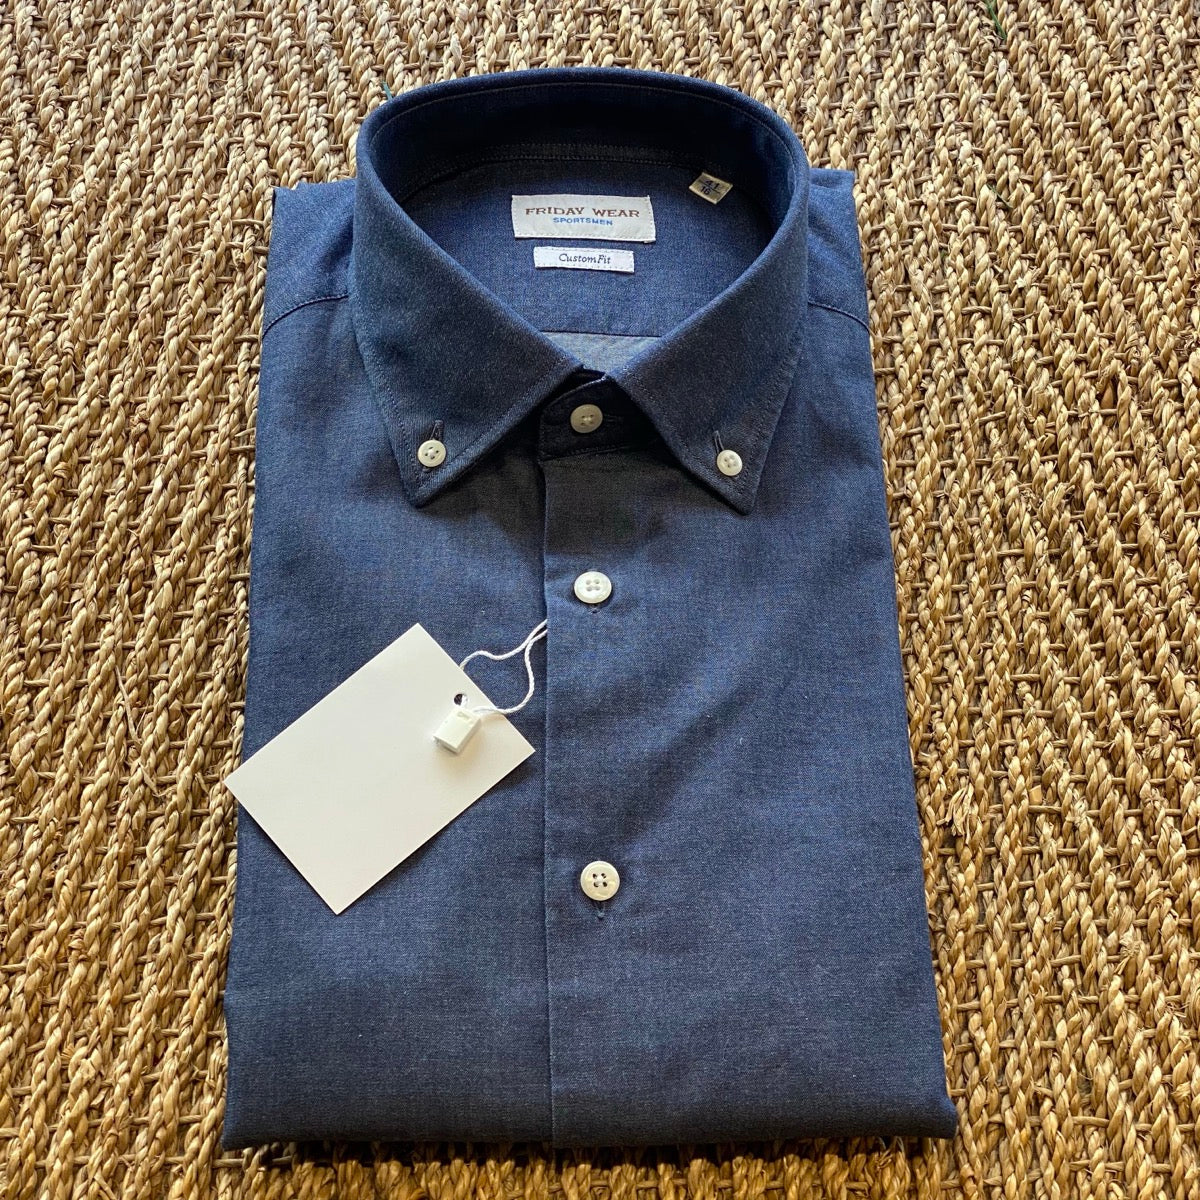 FridayWear - Button Down Blue